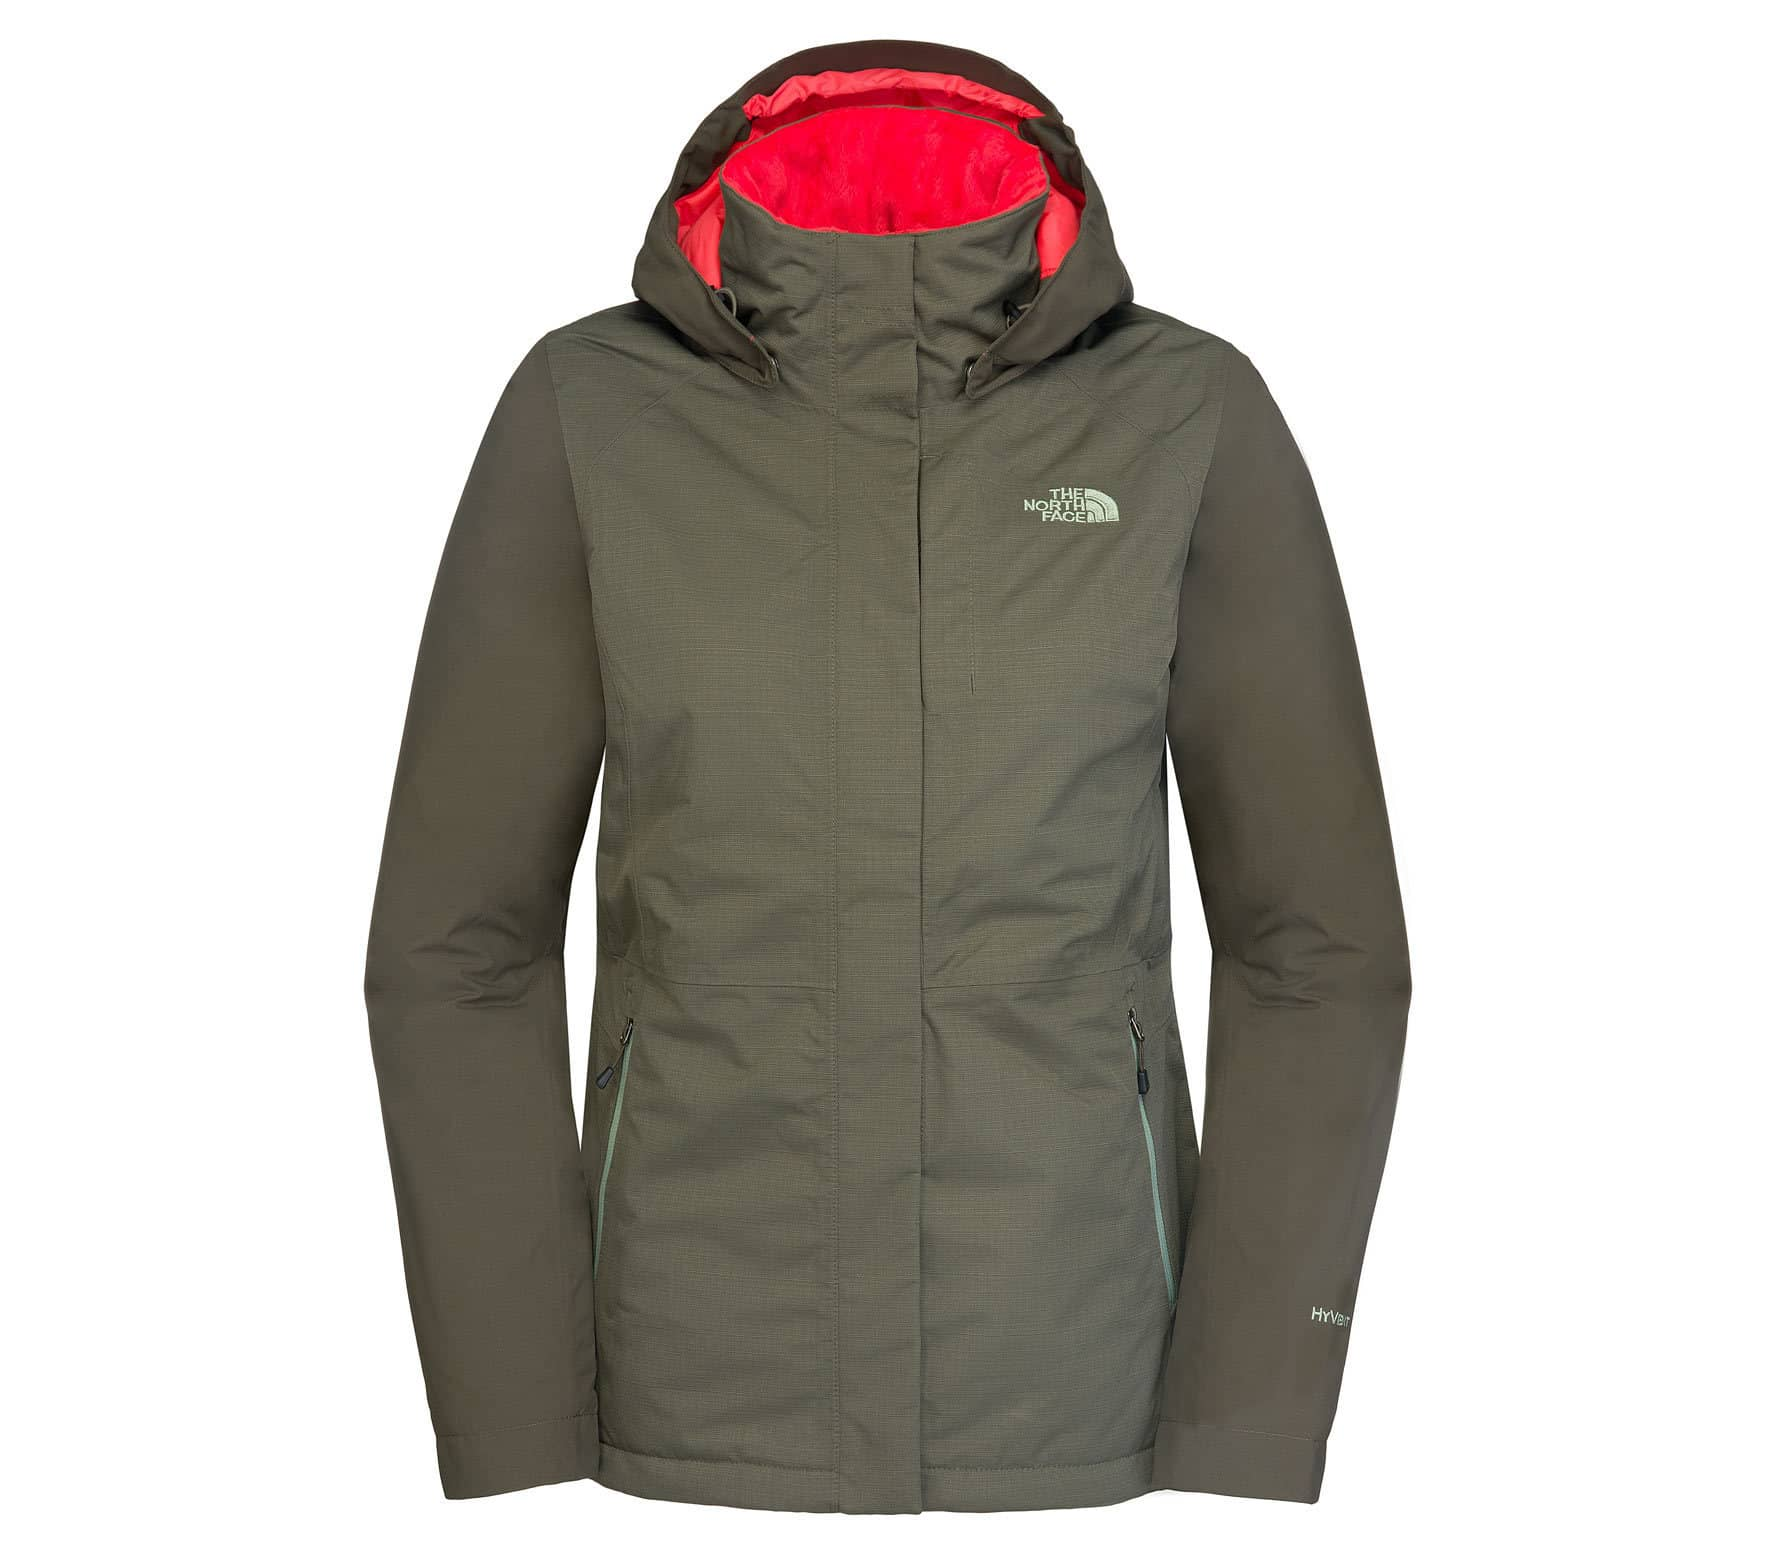 the north face inlux insulated damen regenjacke gr n im online shop von keller sports kaufen. Black Bedroom Furniture Sets. Home Design Ideas